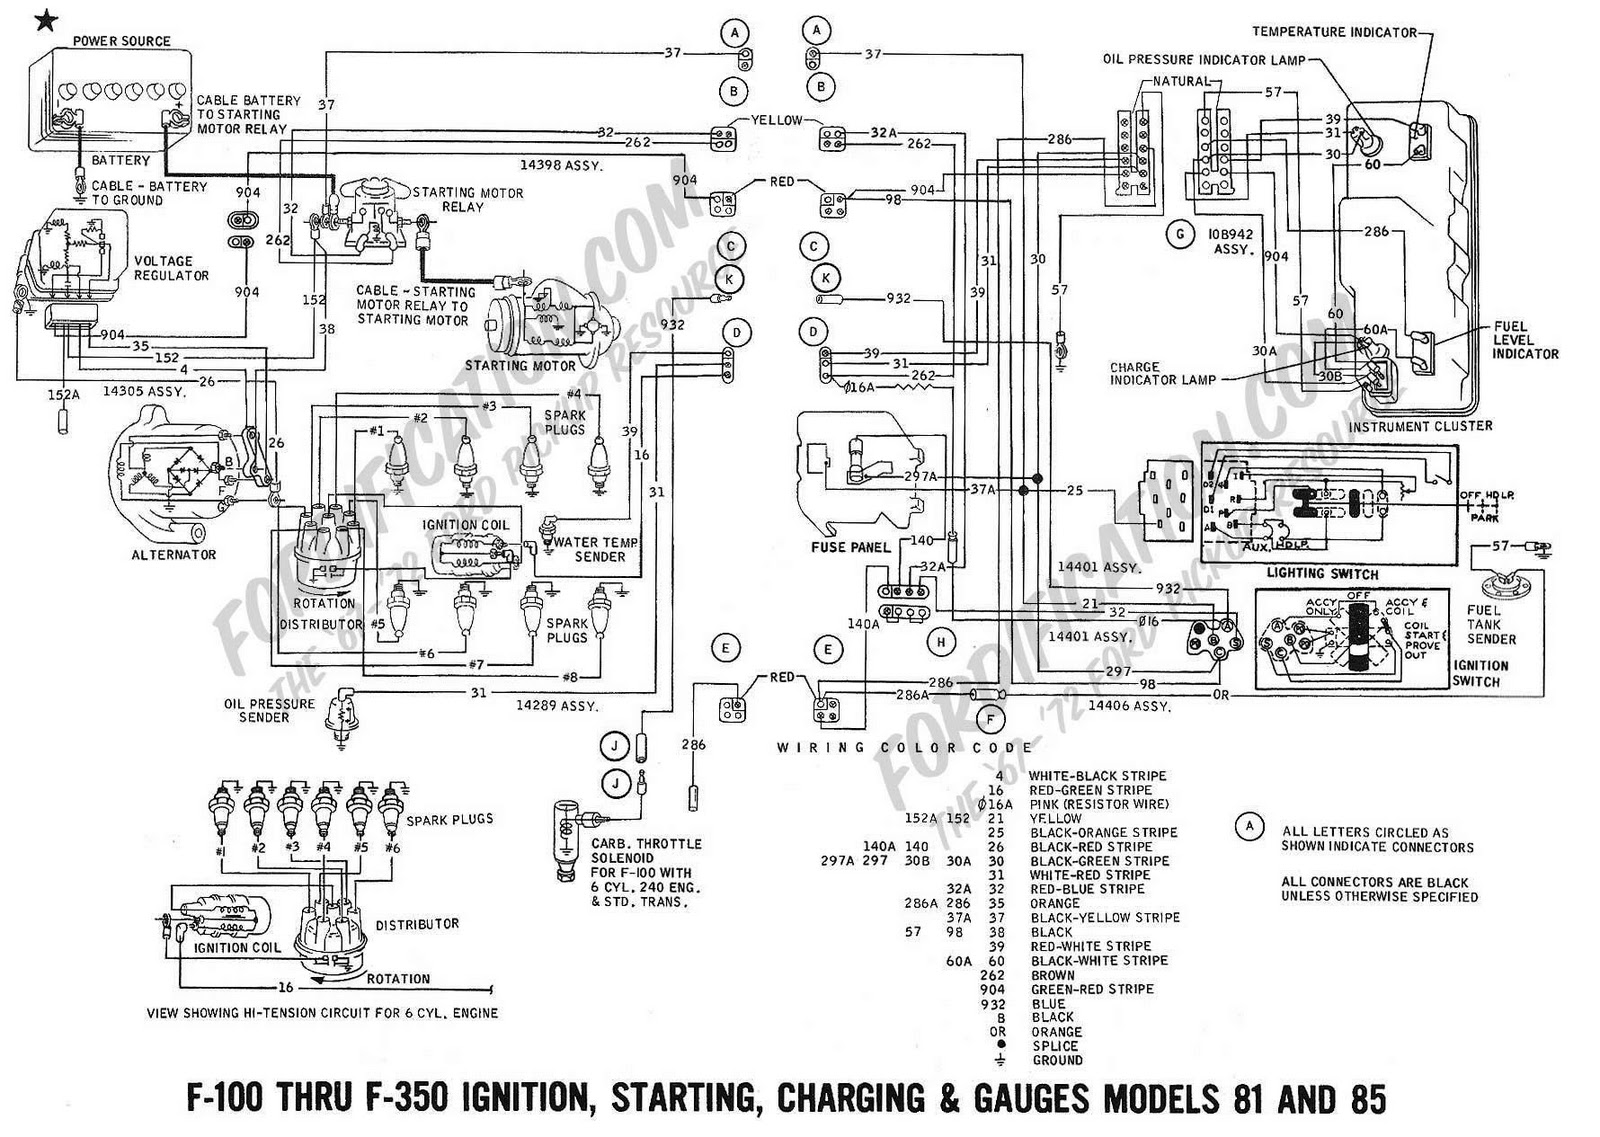 99 CIVIC WIRING DIAGRAM COURTESY LIGHTS L21935 as well Library as well 1983 Ford F150 Wiring Diagram as well 990 Diagram For 4 Cyl Ecu also Wiring Diagram For 1989 Ford F 250 Steering Column. on ford ranger ignition wiring diagram